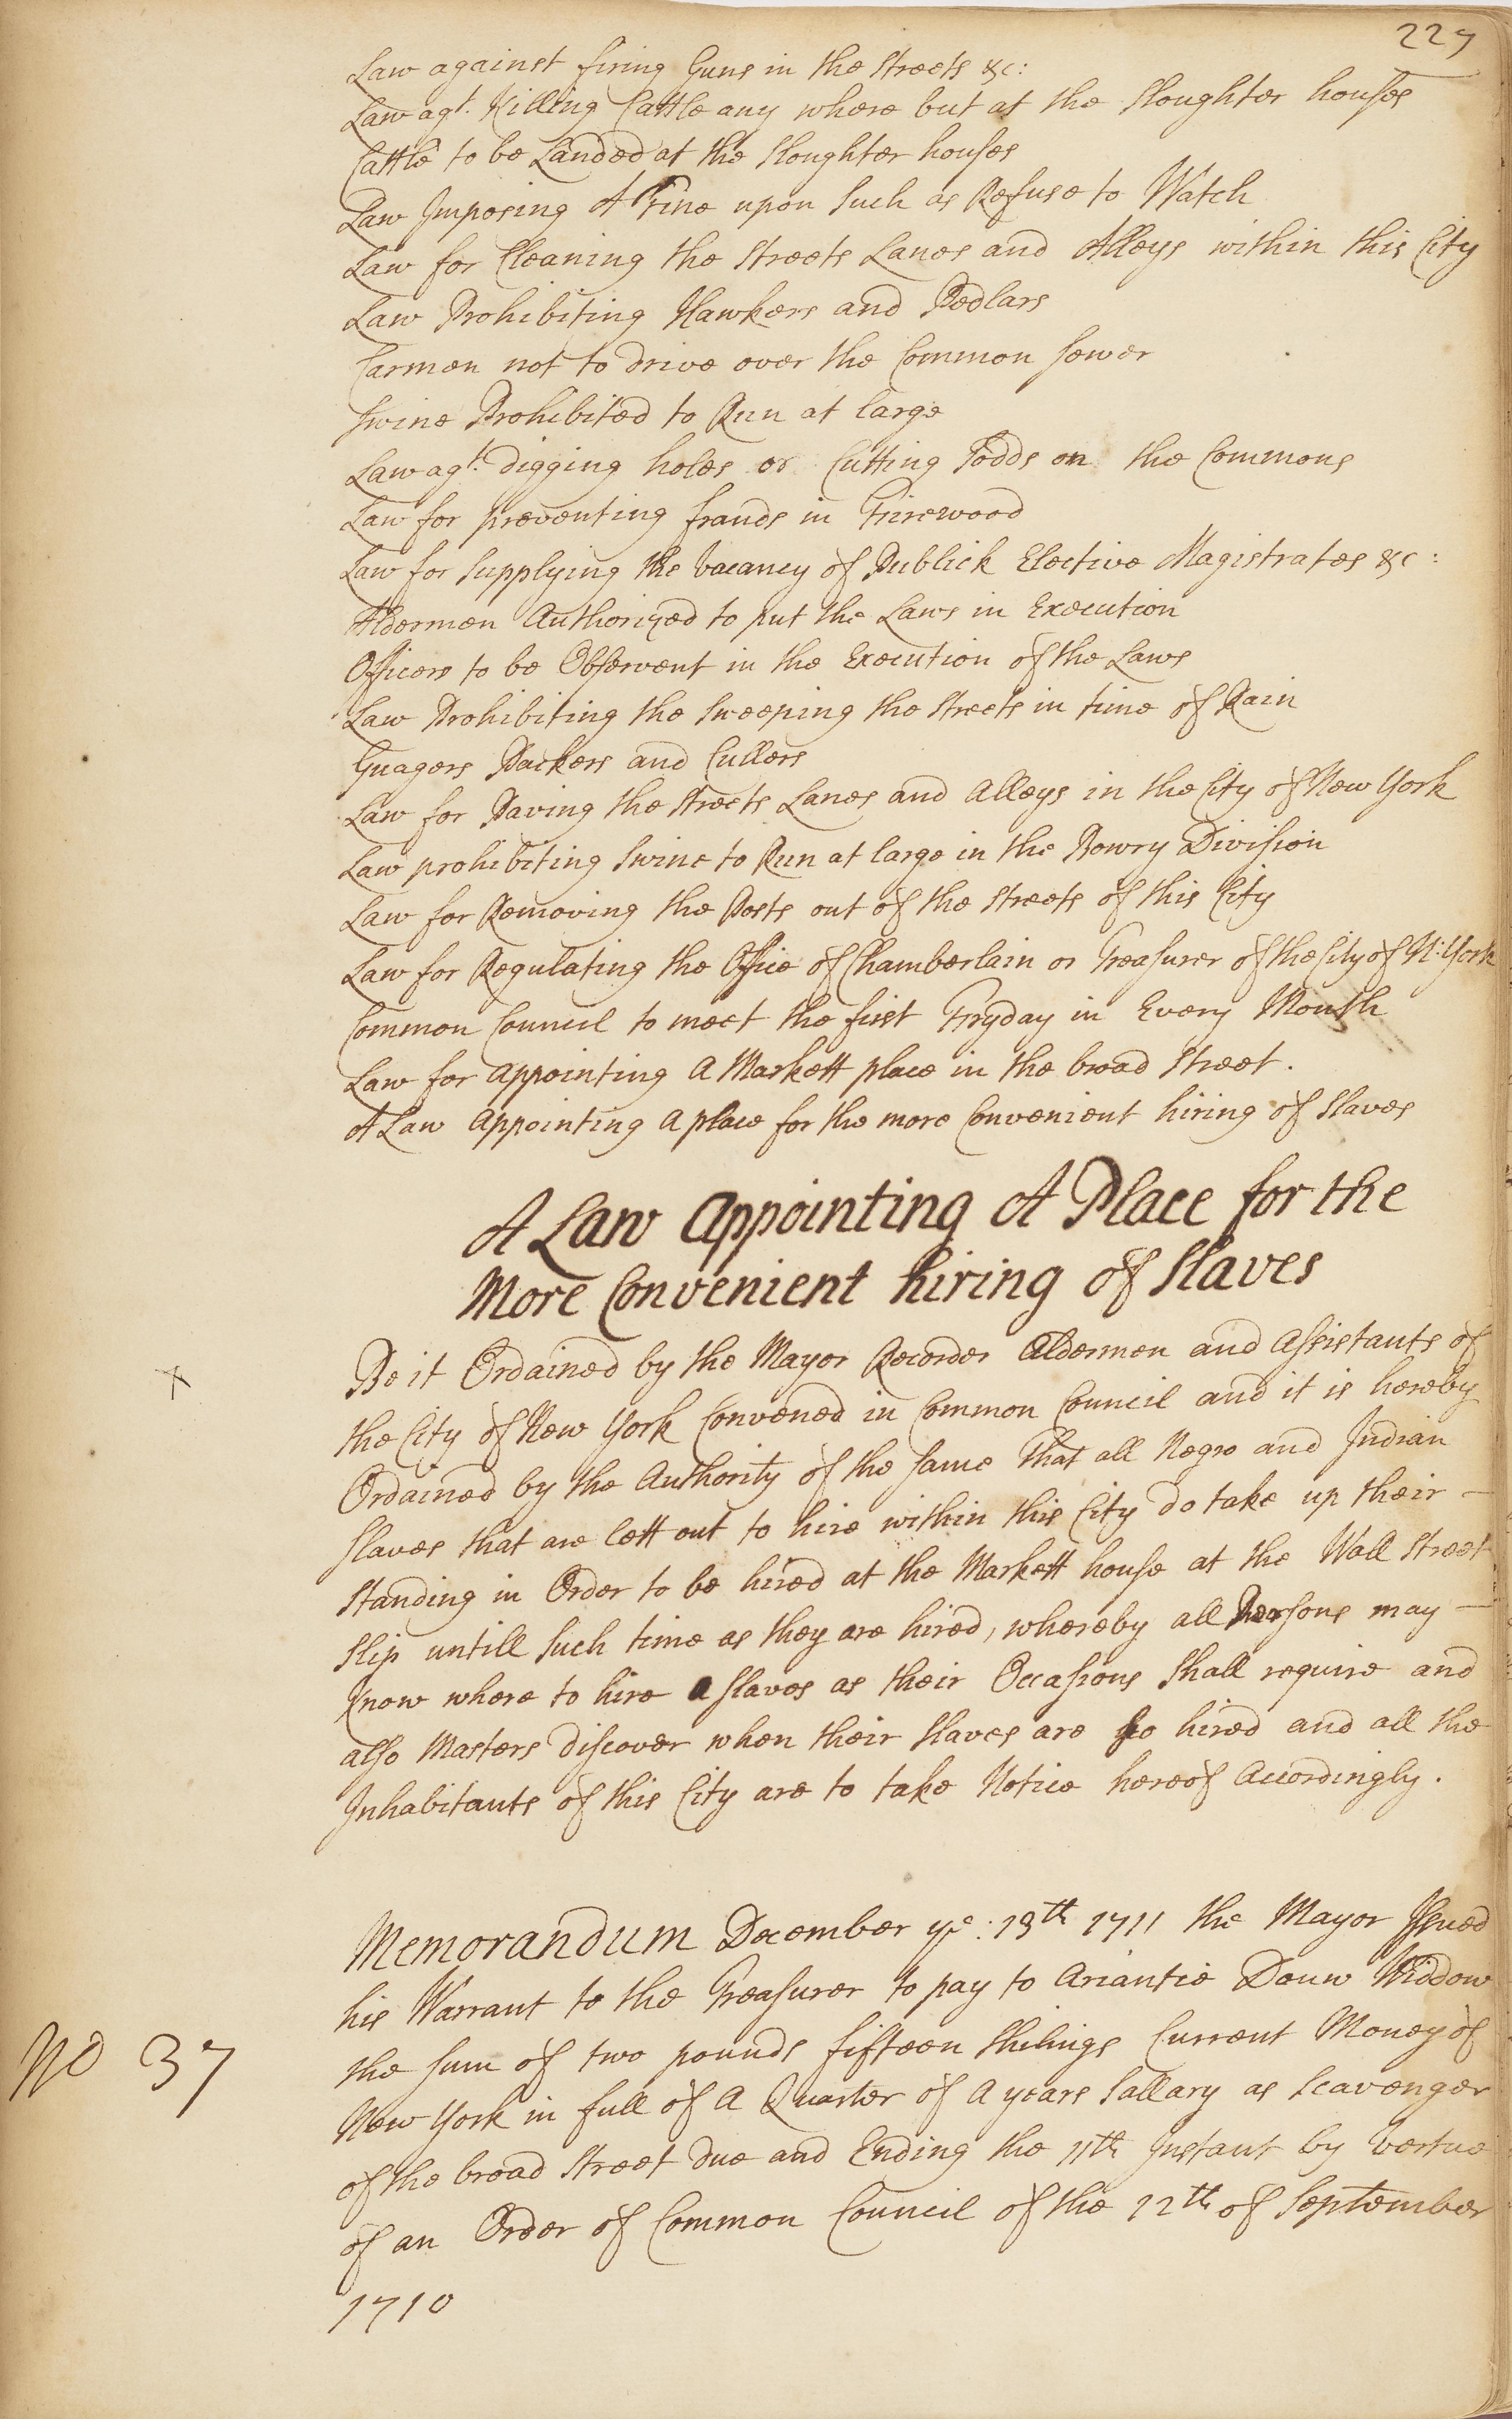 A Law Appointing a Place for the More Convenient hiring of Slaves, November 30, 1711